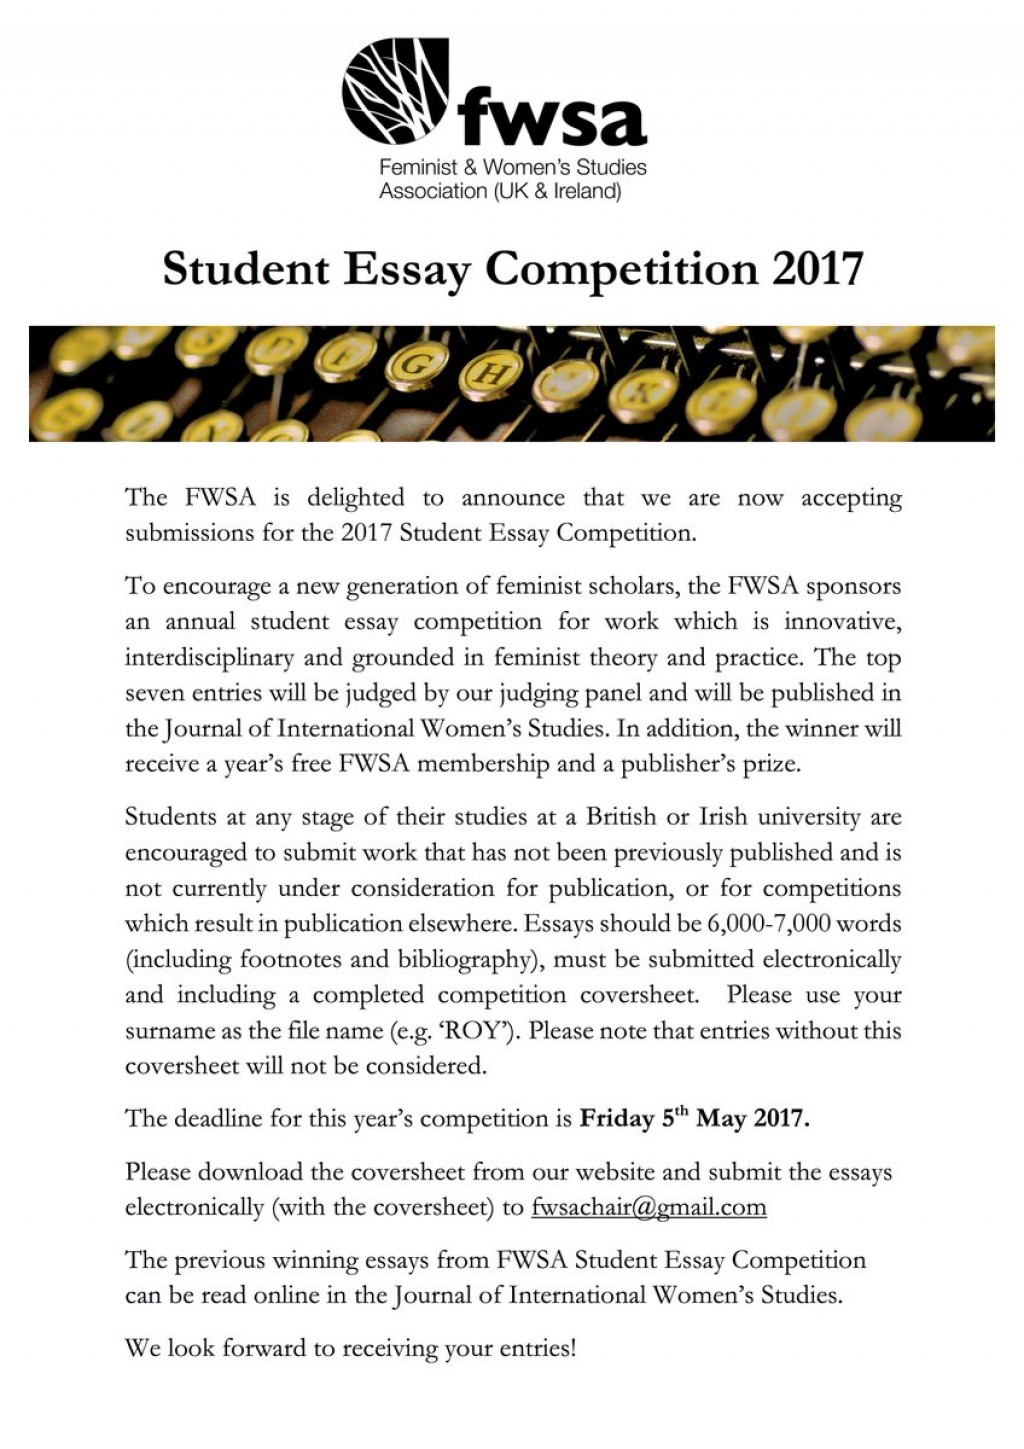 003 We The Students Essay Contest Example Fsz8gxyaa Best Scholarship Rules Winners Large